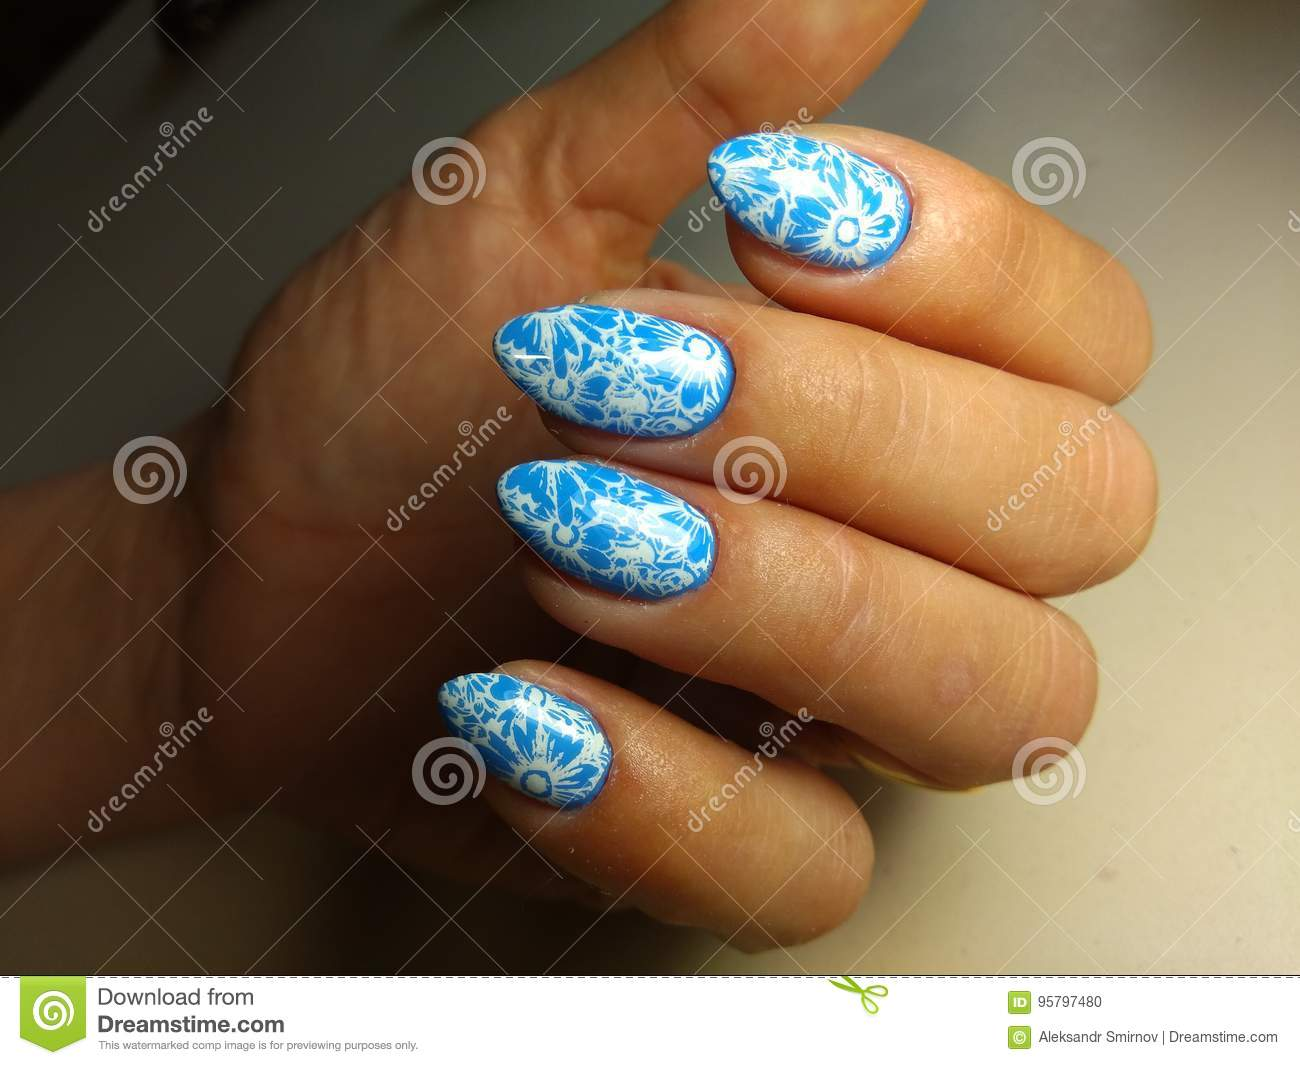 Marine Manicure Nail Design Stock Photo Image Of White Female